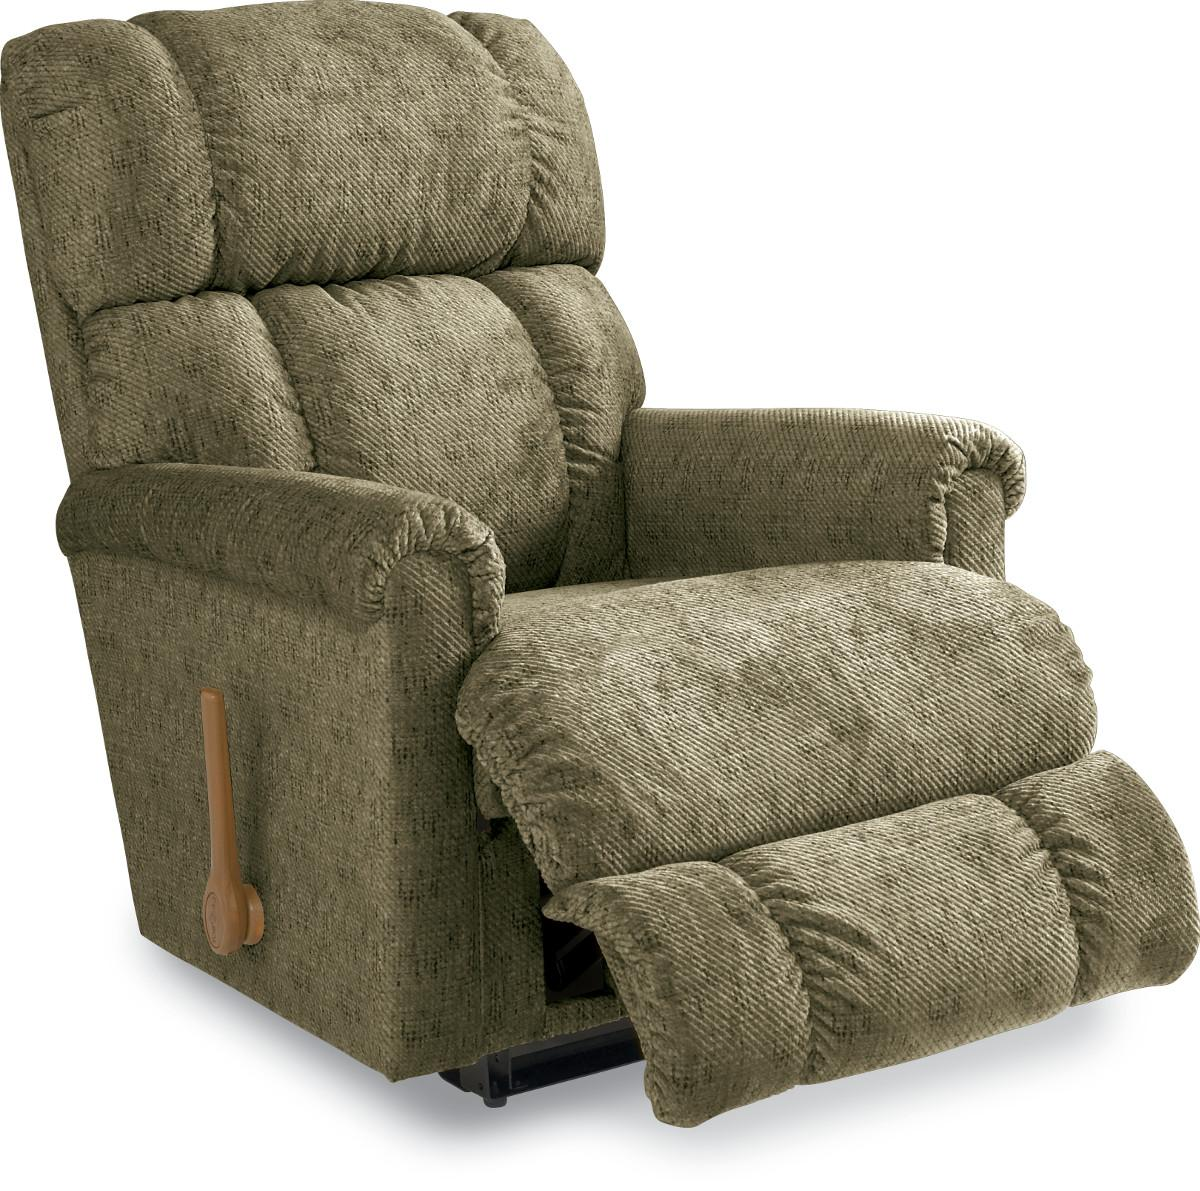 Reclina Way Reclining Chair By La Z Boy Wolf And Gardiner Wolf Furniture